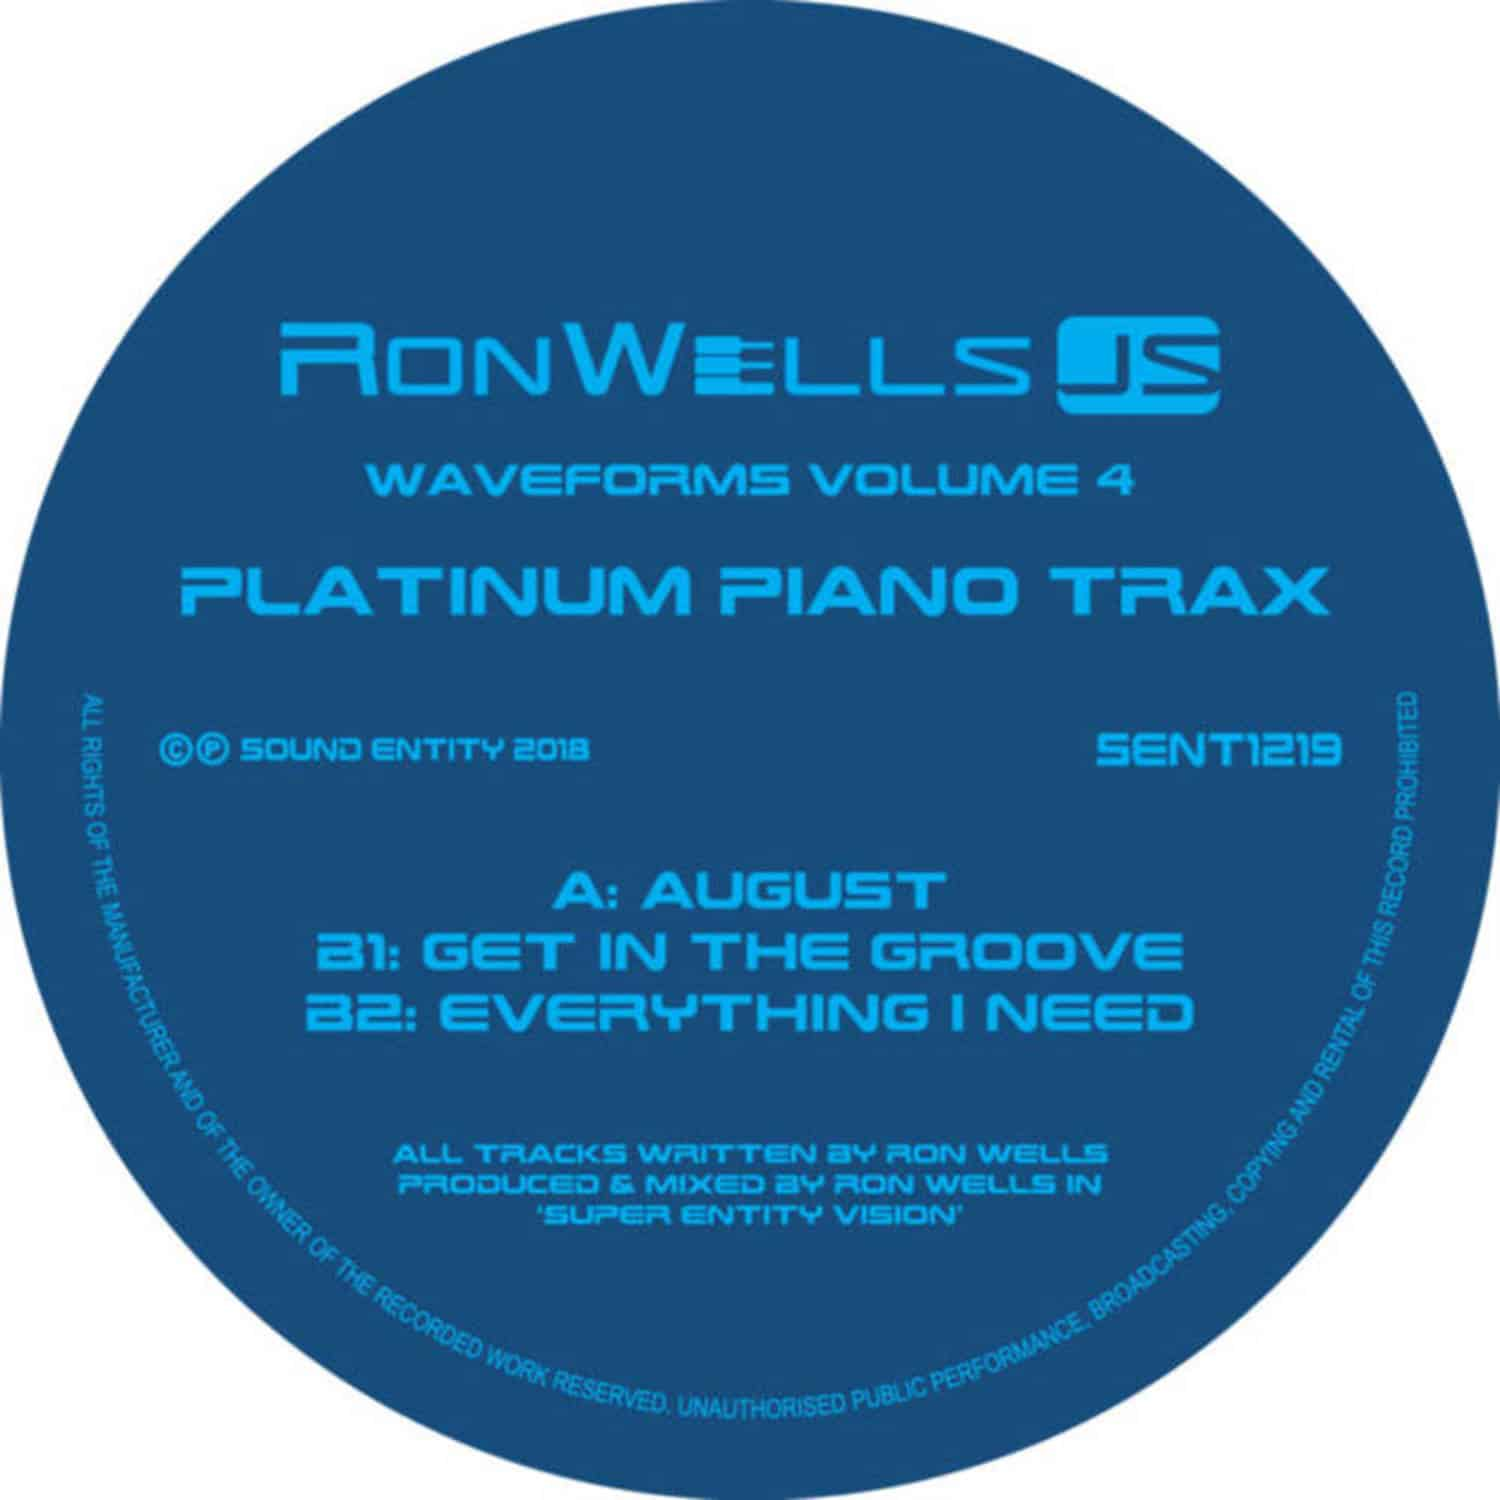 Ron Wells - WAVEFORMS IV, PLATINUM PIANO TRAX